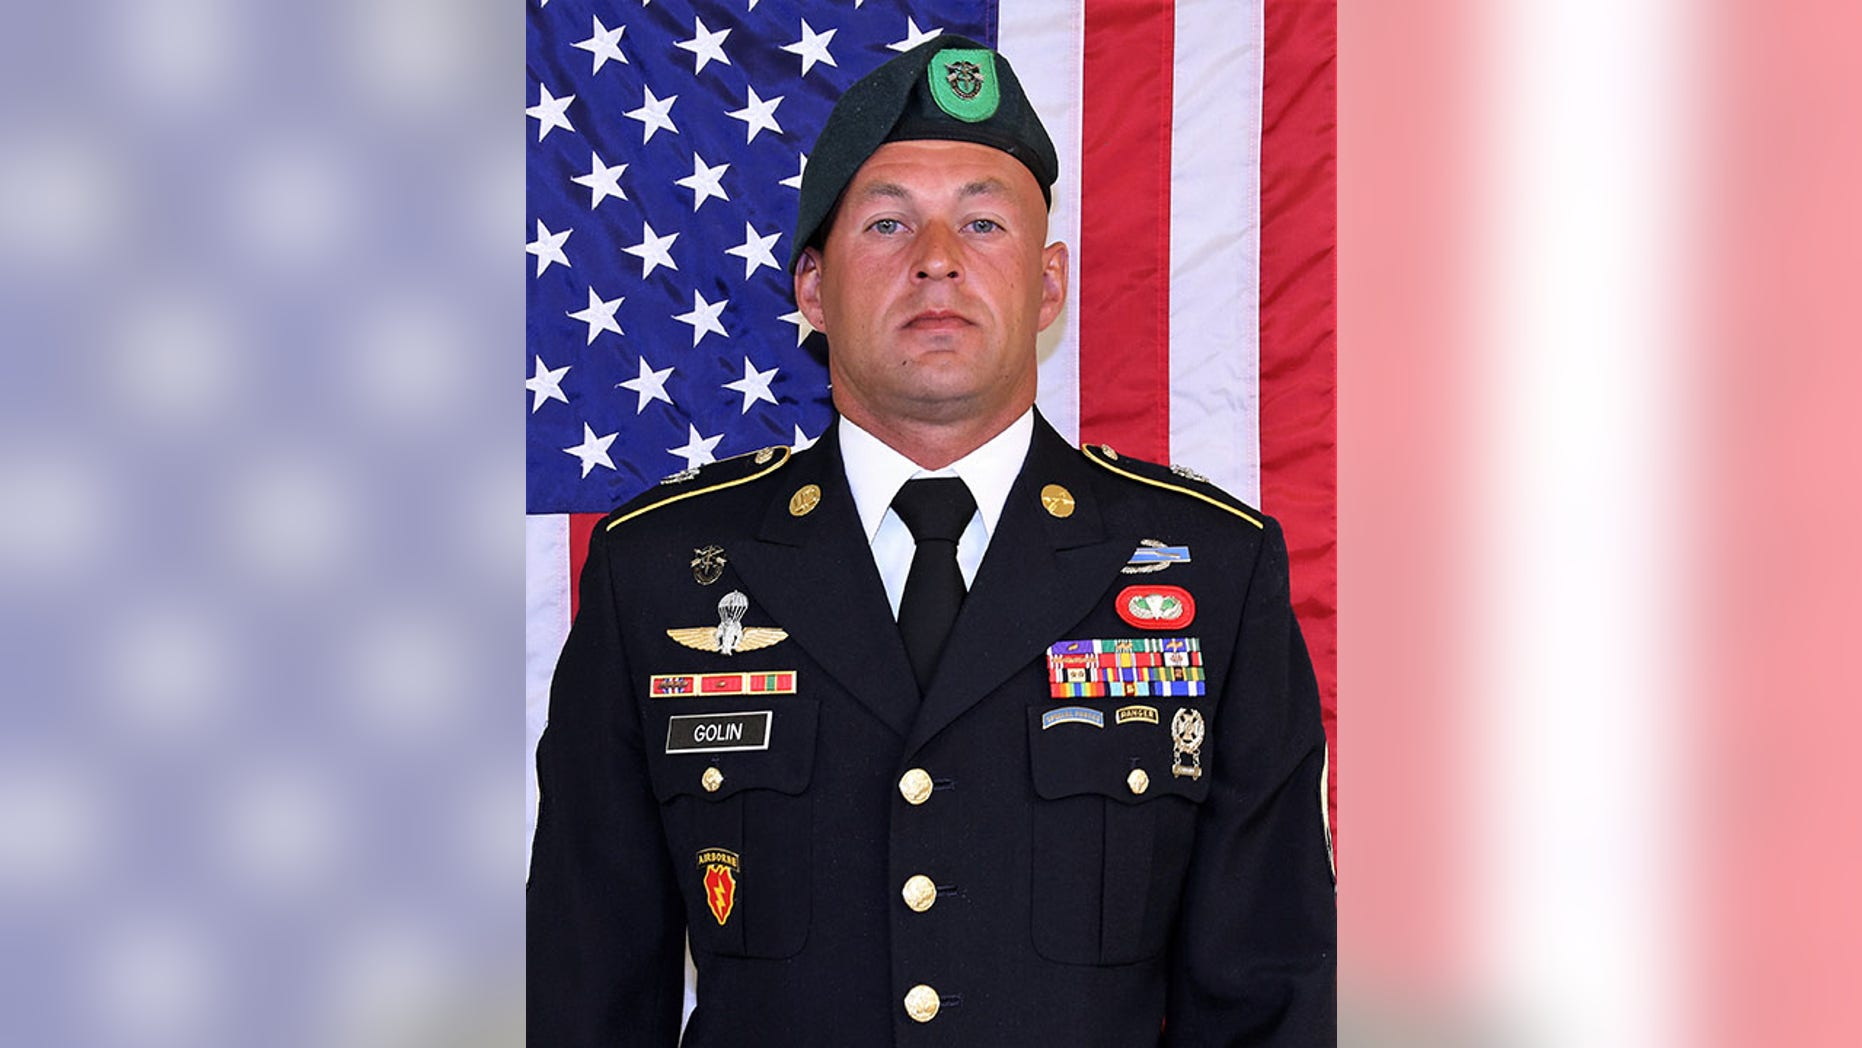 The dead soldier was identified as 34-year-old Mihail Golin, of Fort Lee, New Jersey.